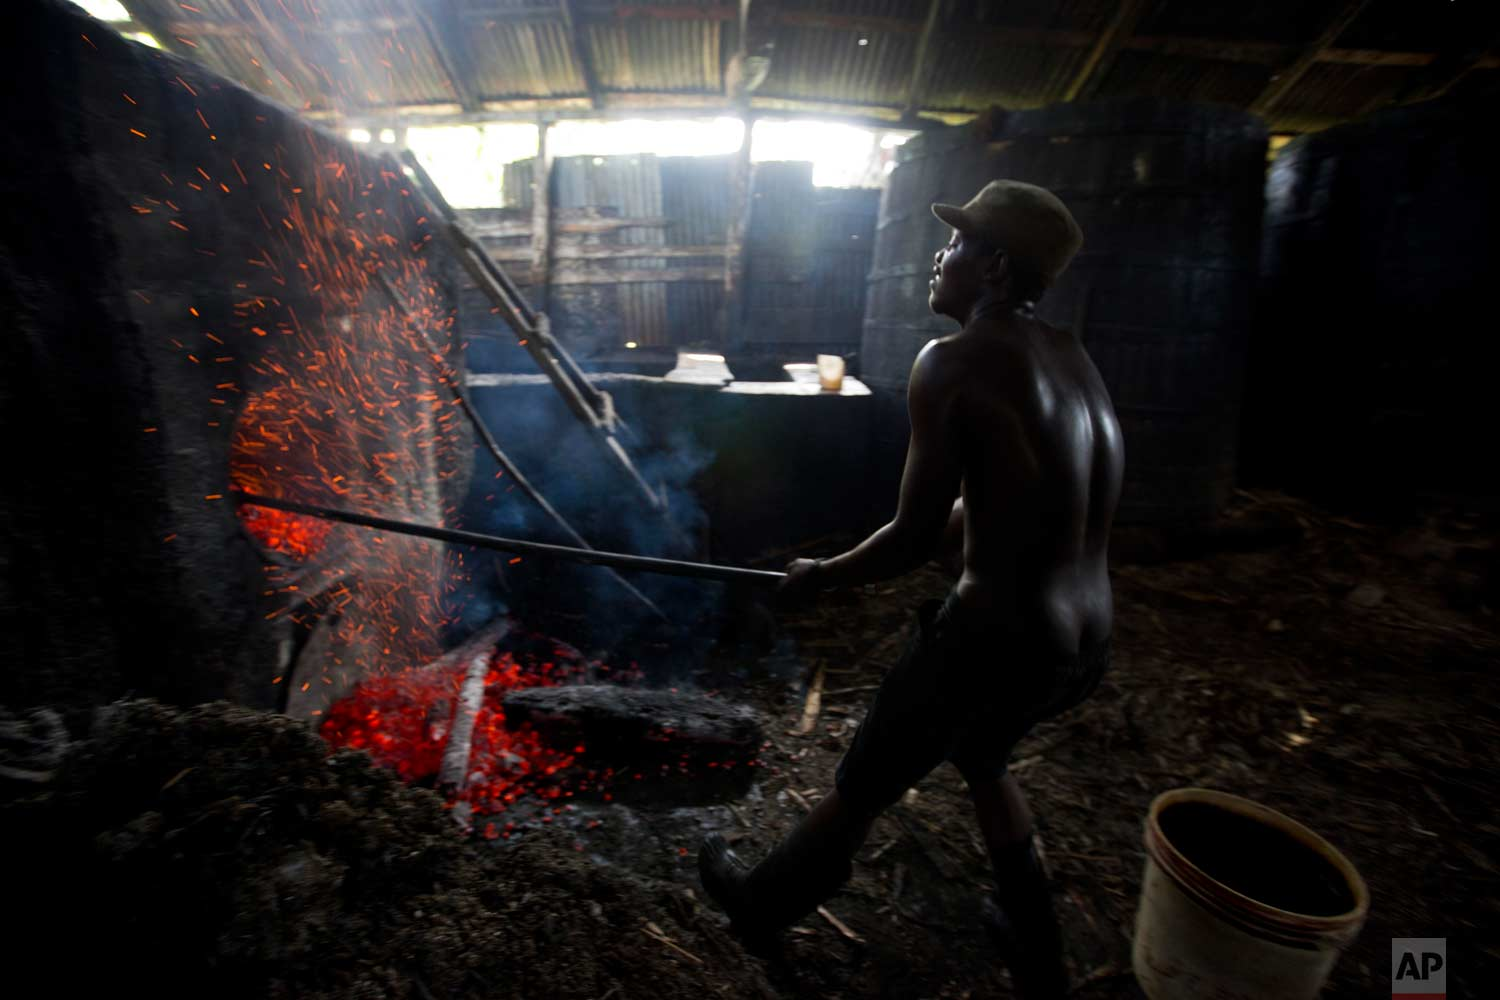 In this June 16, 2017 photo, Batel Delciner, 23, removes wood from a furnace to lower the heat cooking sugar juice at the Ti Jean distillery, which produces clairin, a sugar-based alcoholic drink, in Leogane, Haiti. The broth is cooked for about four hours after a fermentation period of four to eight days. (AP Photo/Dieu Nalio Chery)